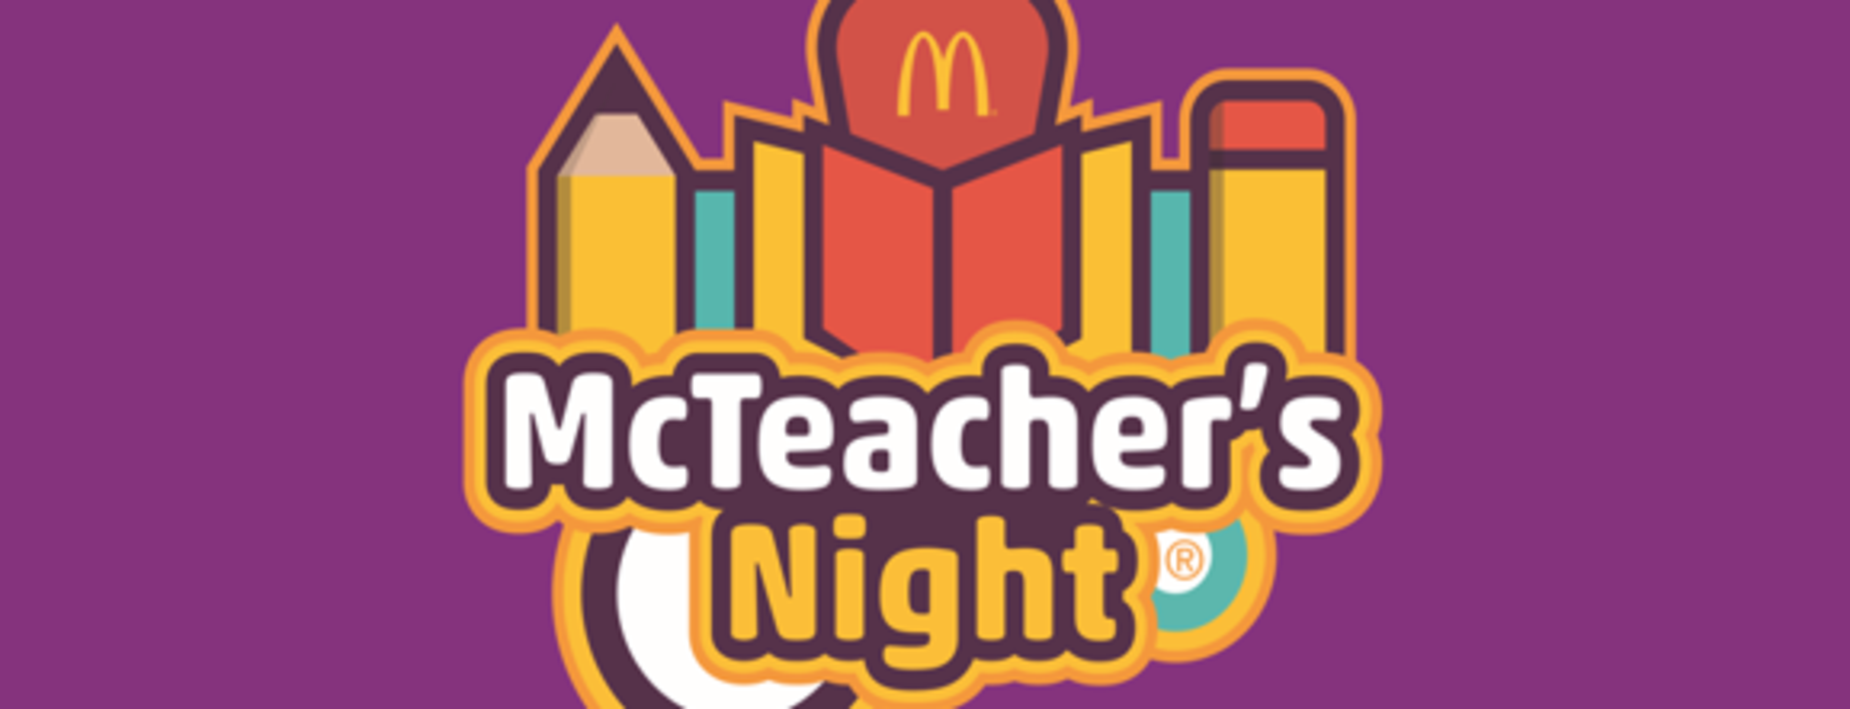 RES McTeacher's Night